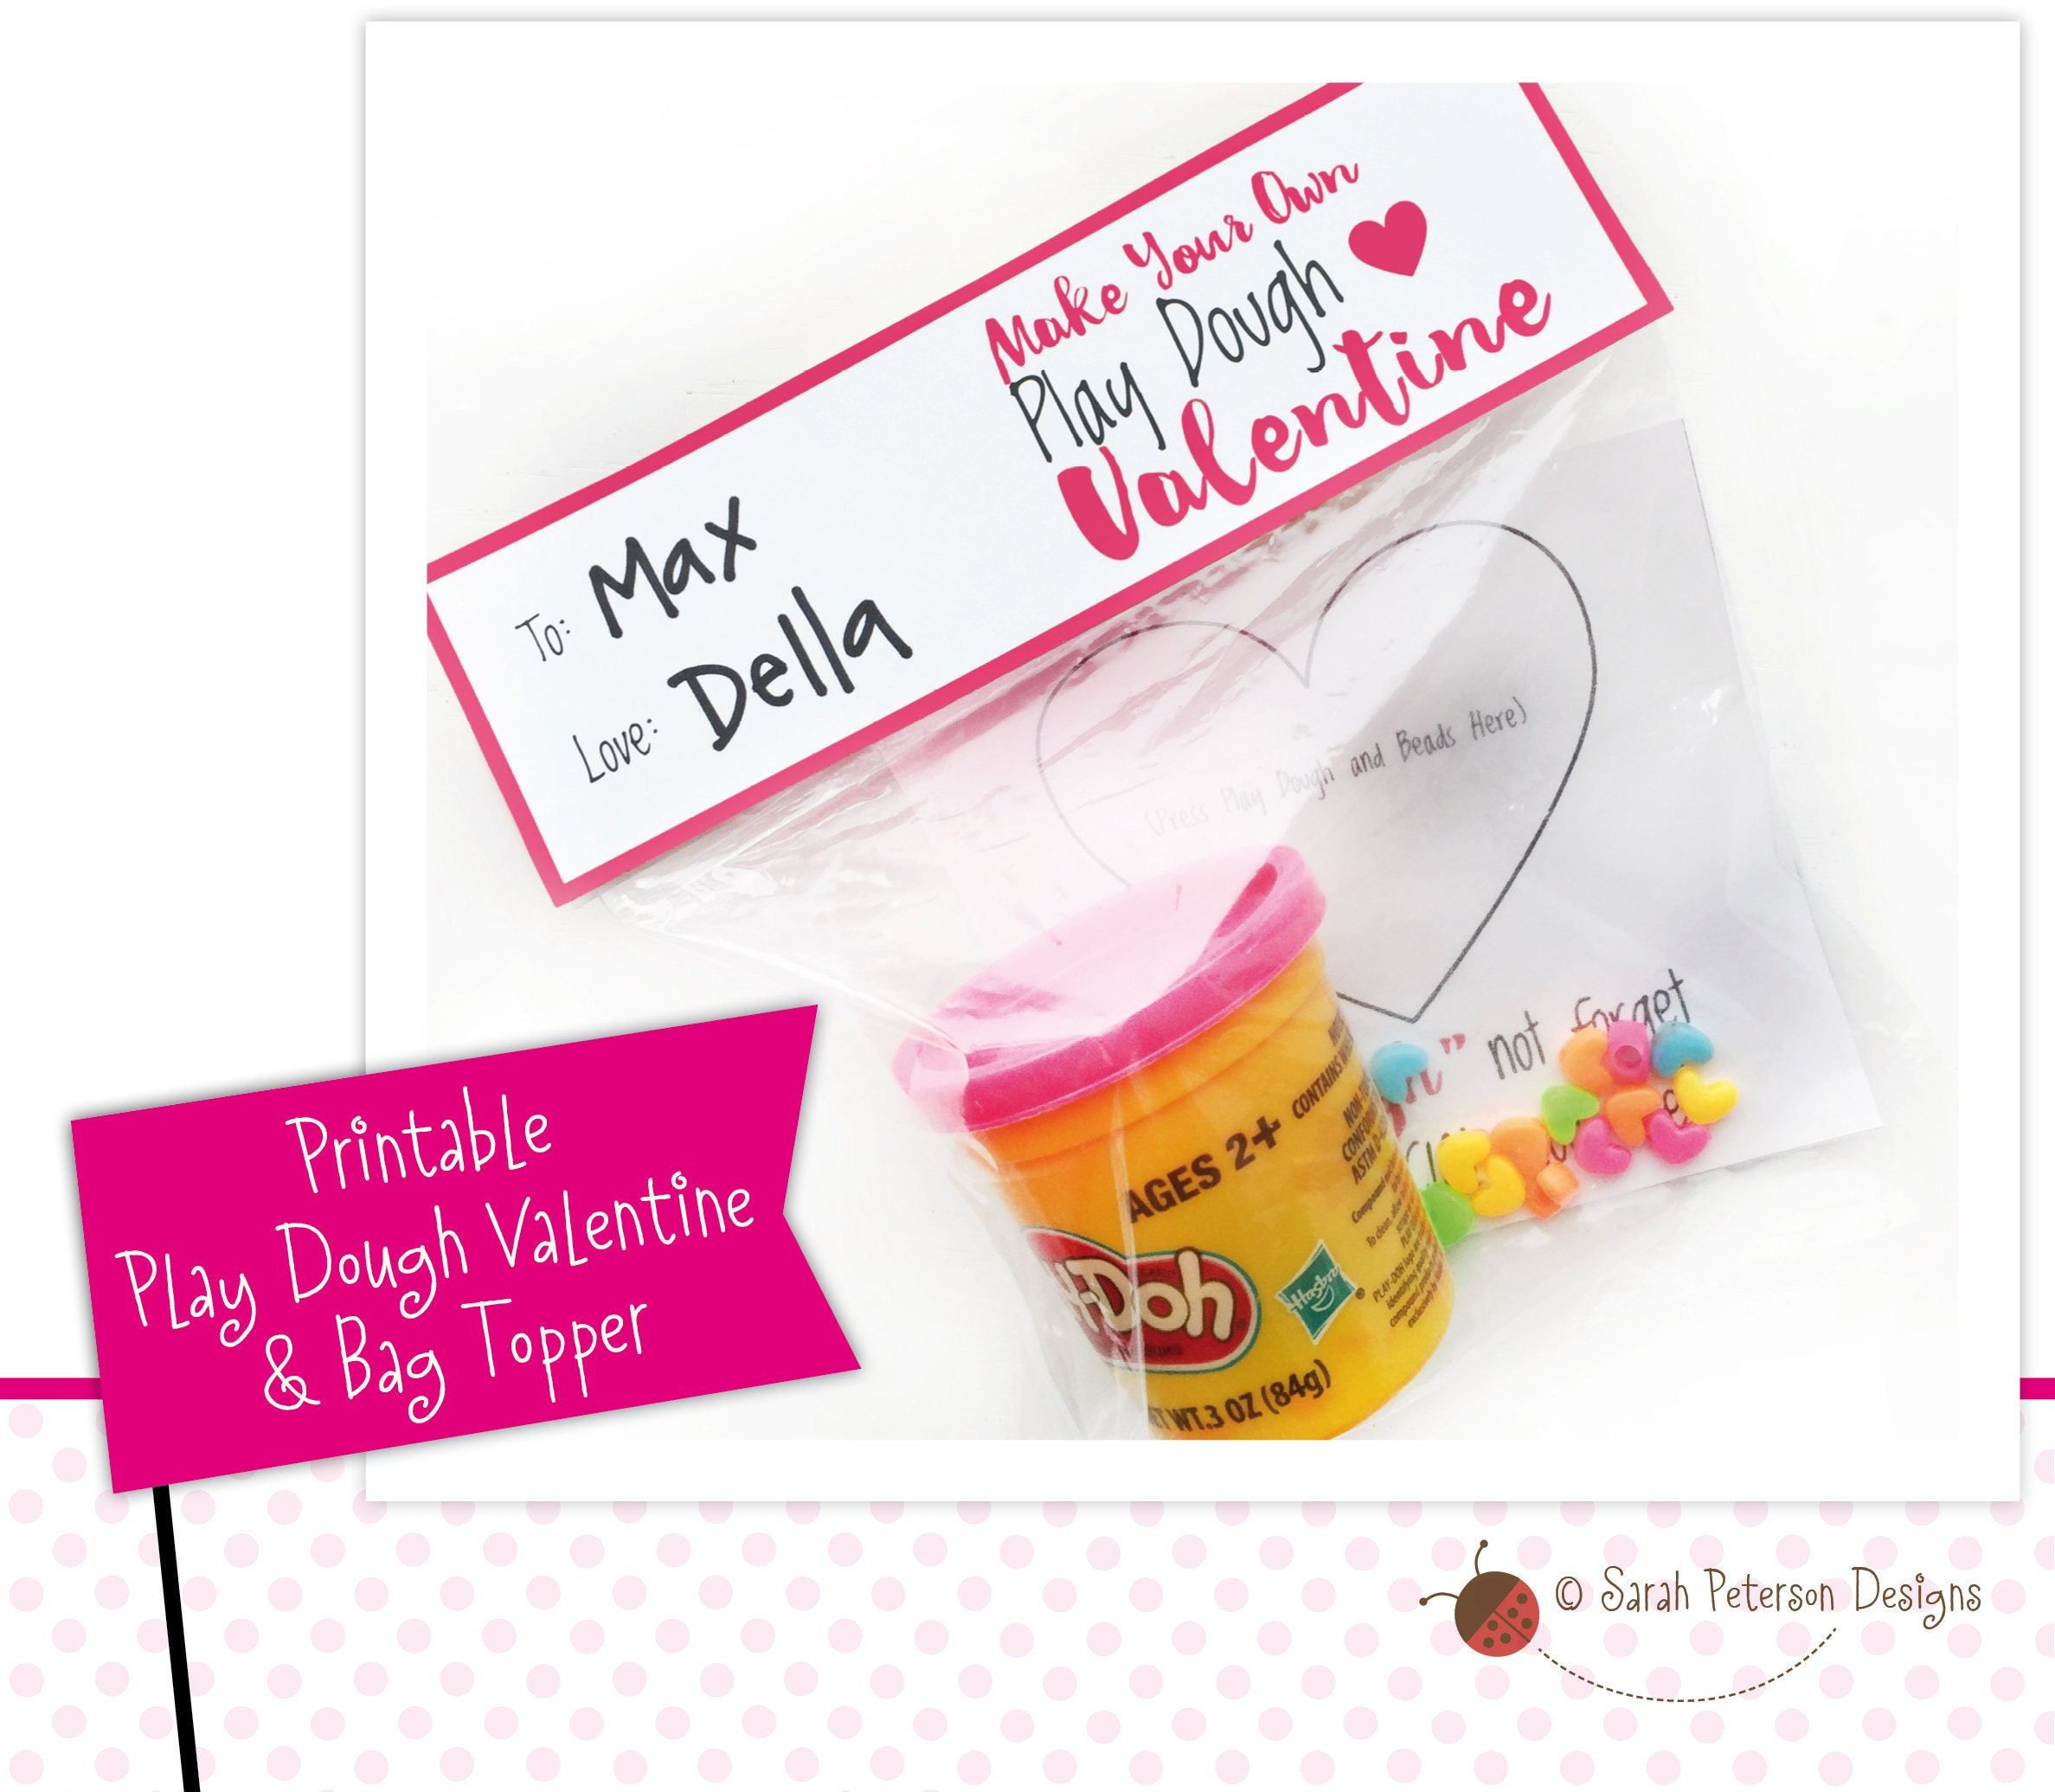 image about Play Doh Valentine Printable referred to as PRINTABLE - Participate in Dough Valentine Recreation Desire Bag Topper - Immediate Obtain